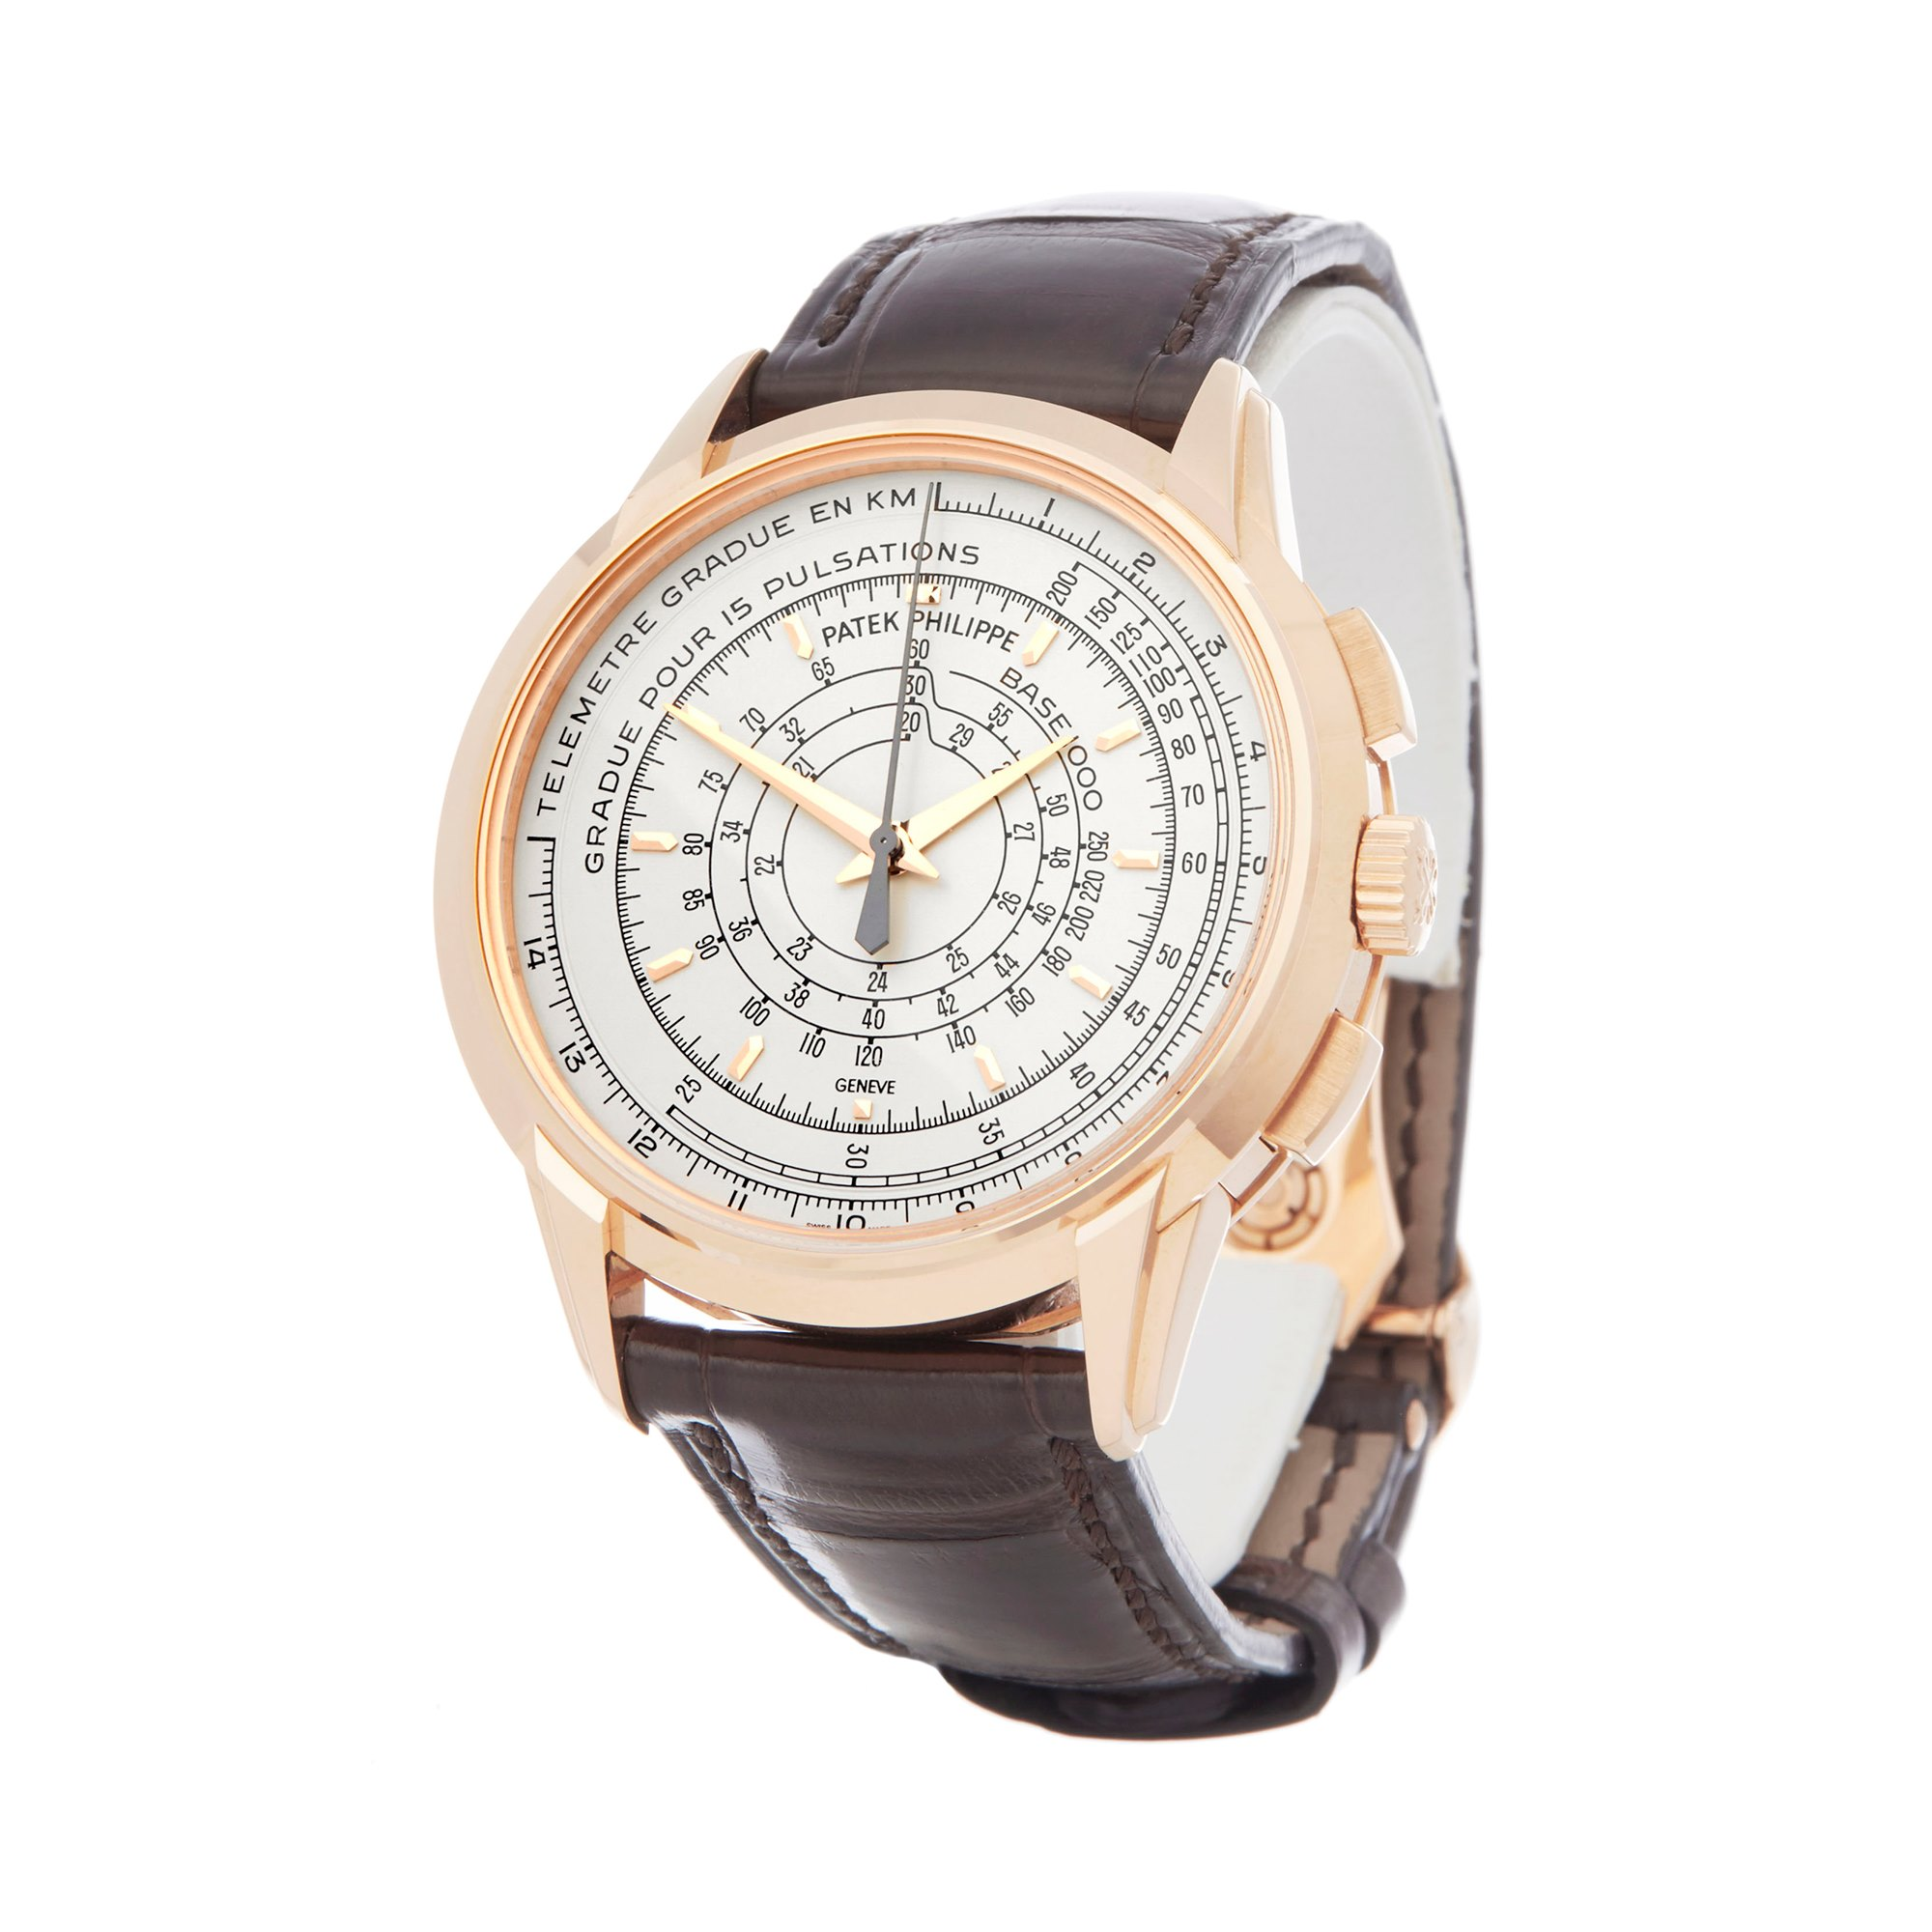 Patek Philippe Multi-Scale Chronograph Eric Clapton's 175th Anniversary Watch Rose Gold 5975R-001